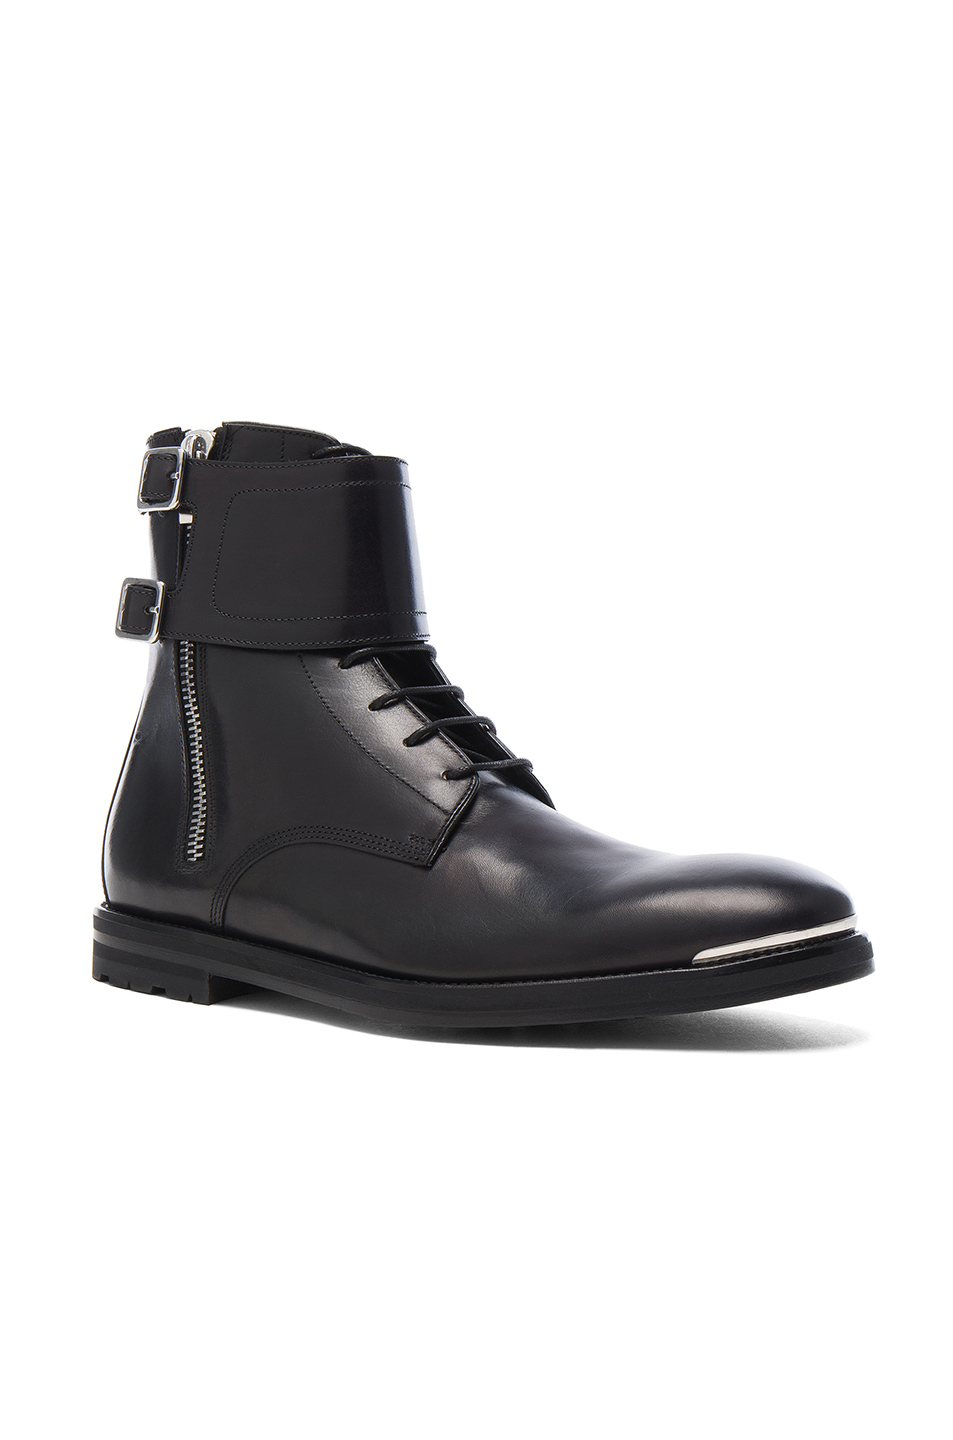 Alexander McQueen Strap Leather Combat Boots in Black